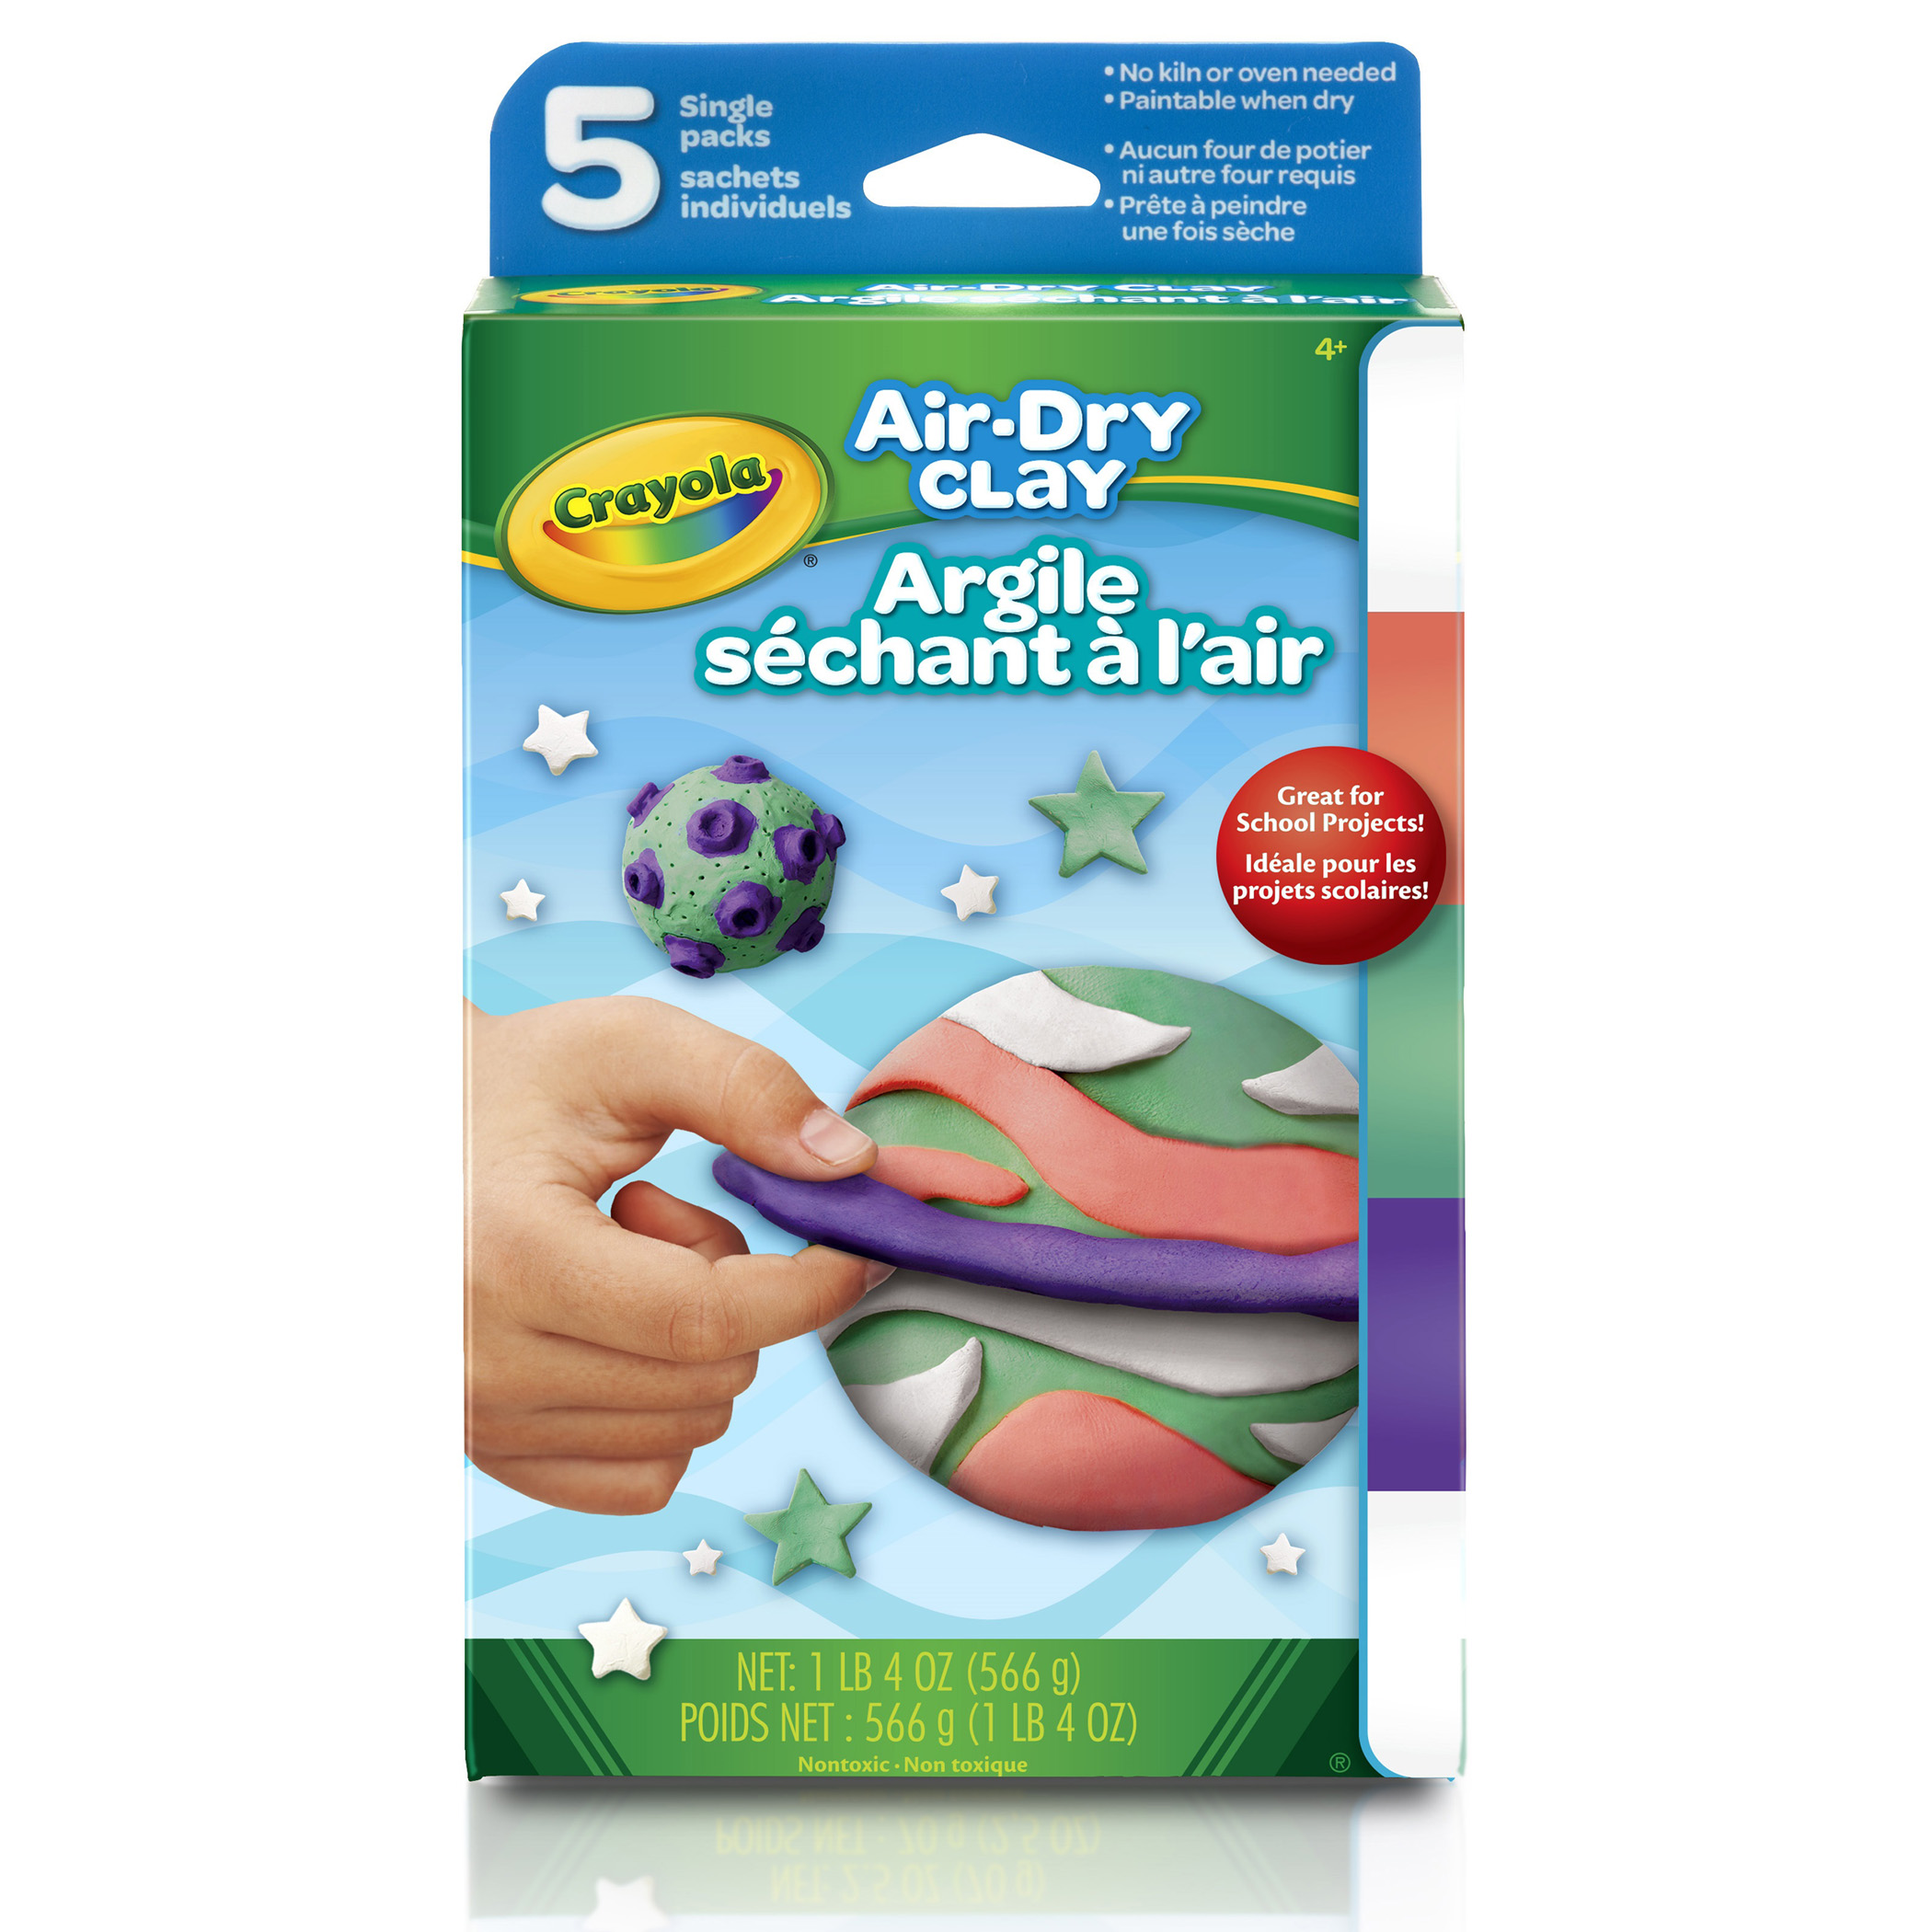 Crayola Air-Dry Clay Variety Pack, 5 Bright Colors Per Pack, 3 Packs